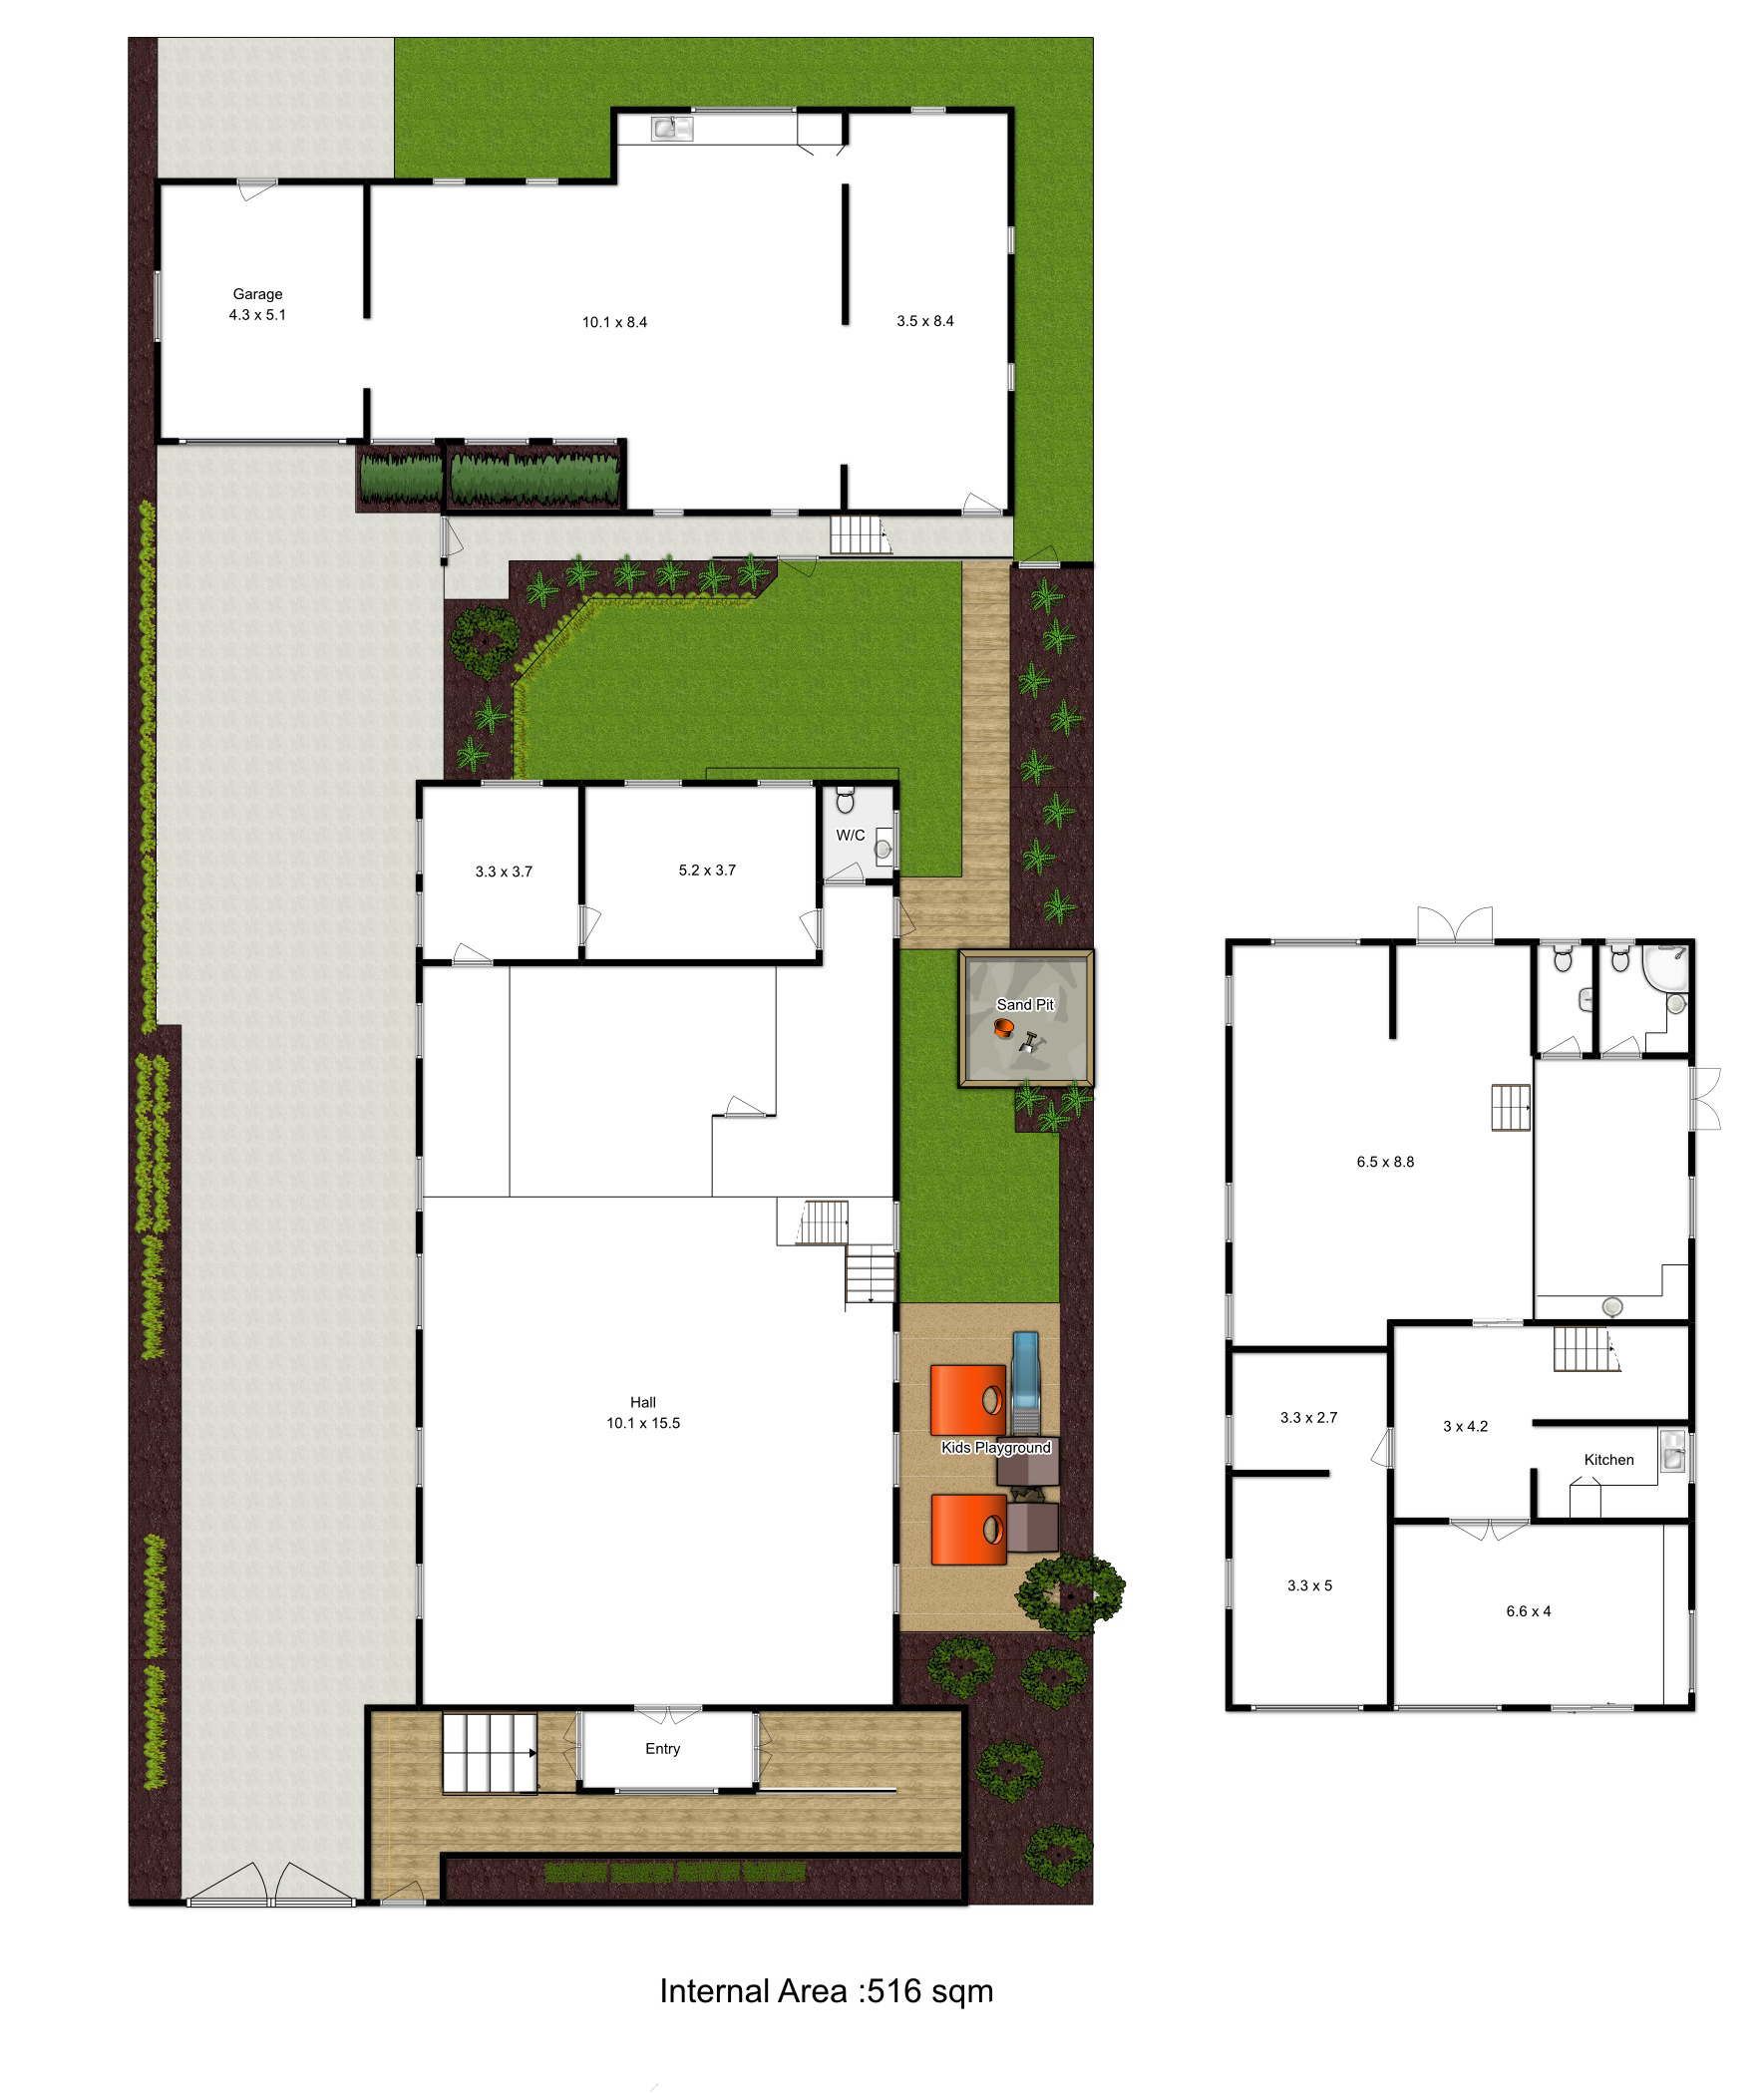 Floor Plan with Sitemap